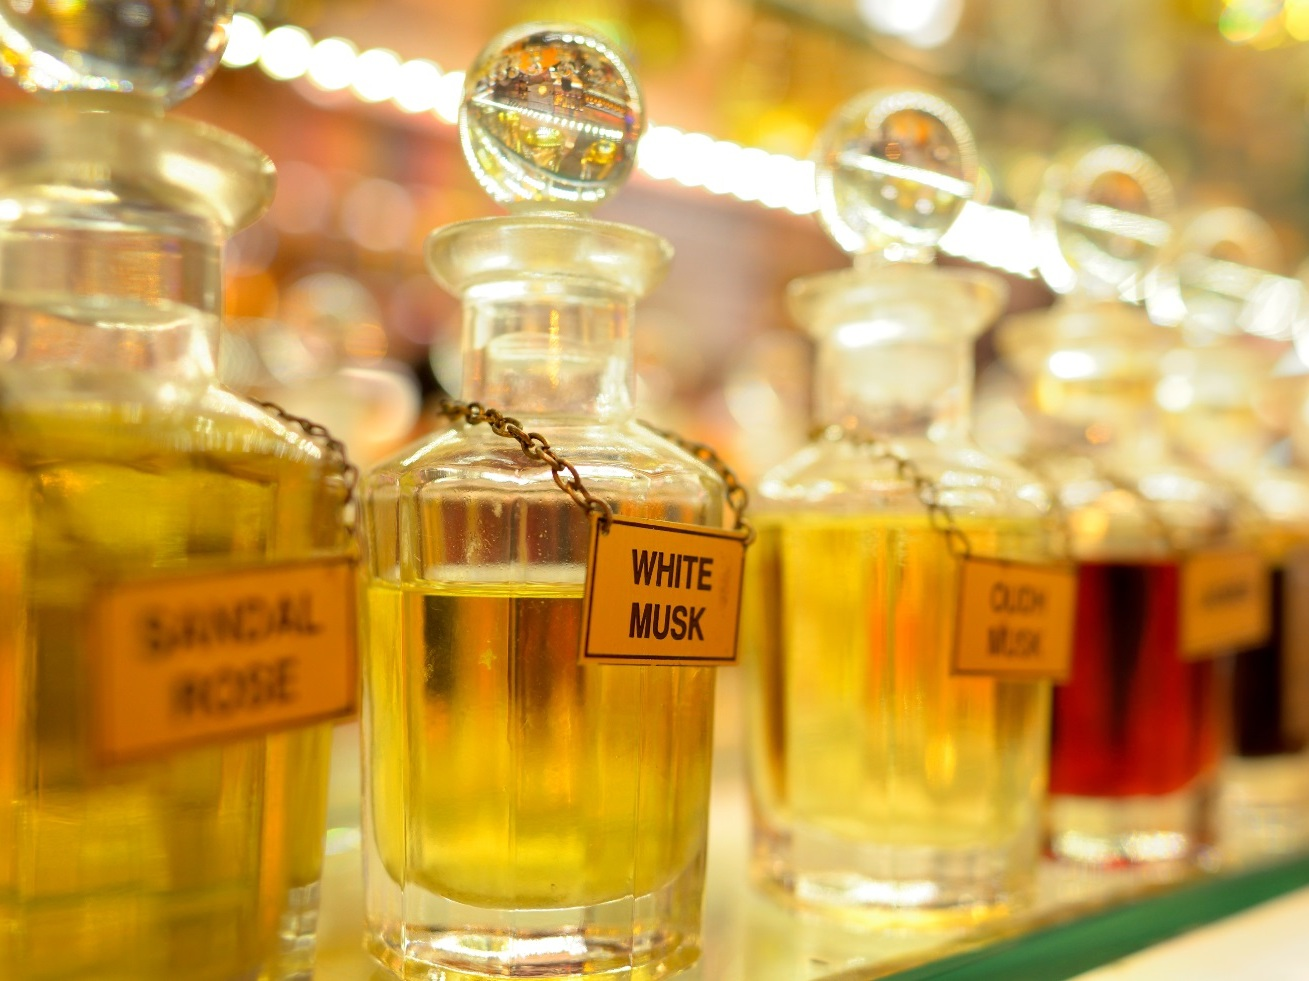 Various perfume bottles, for sale in a bazaar.